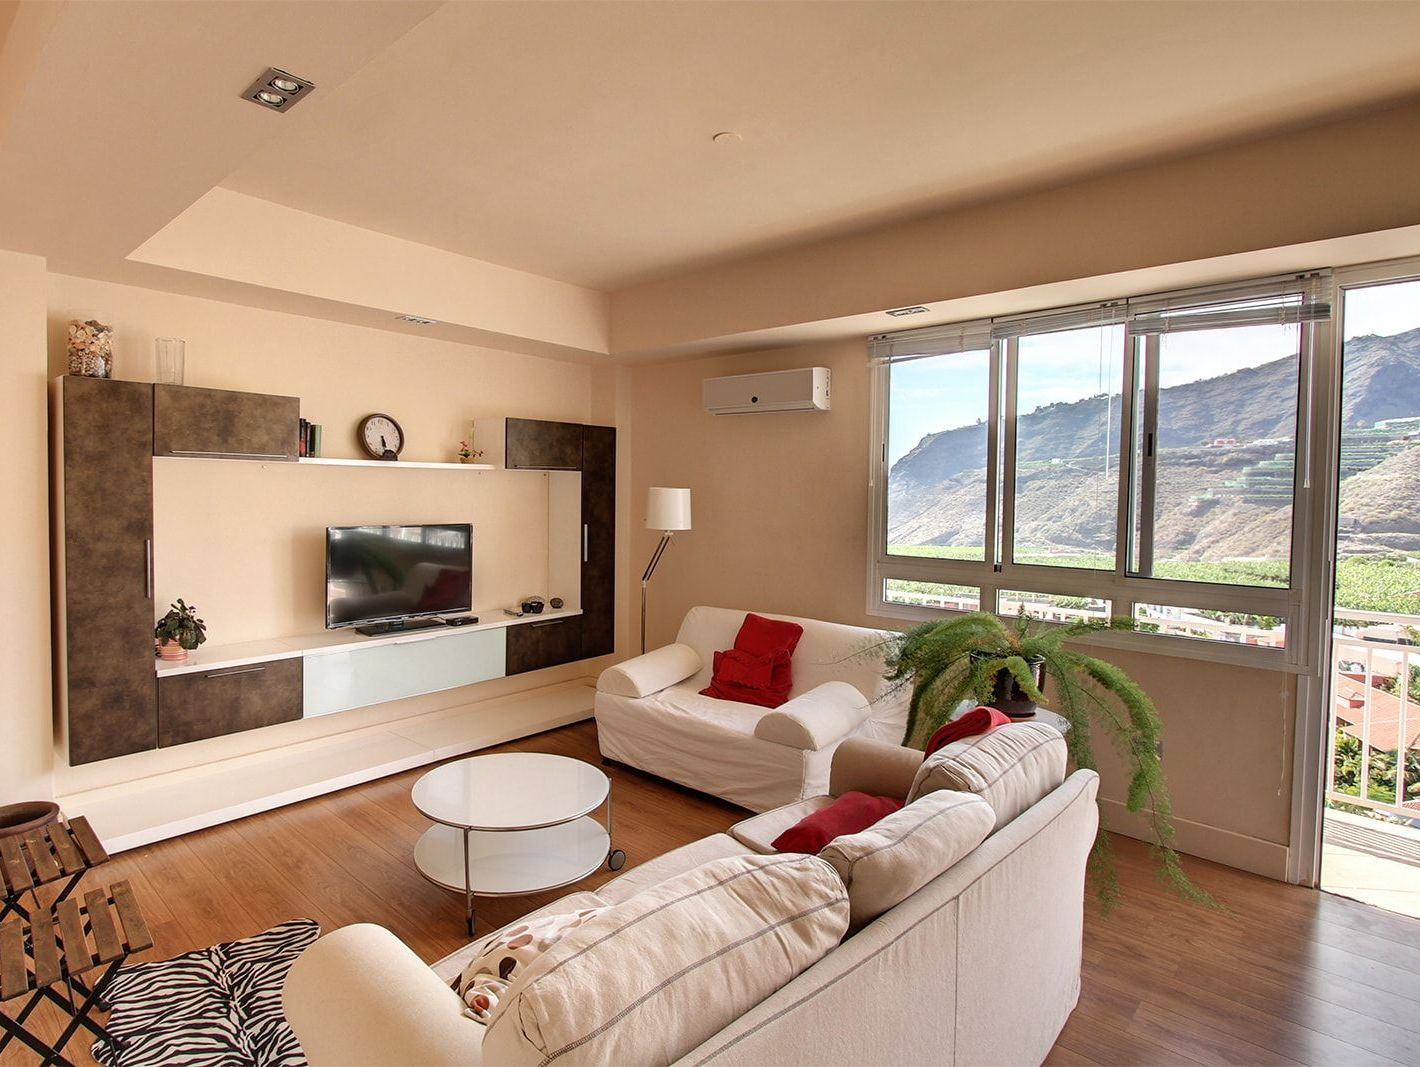 Living cosily in the modern city apartment on La Palma